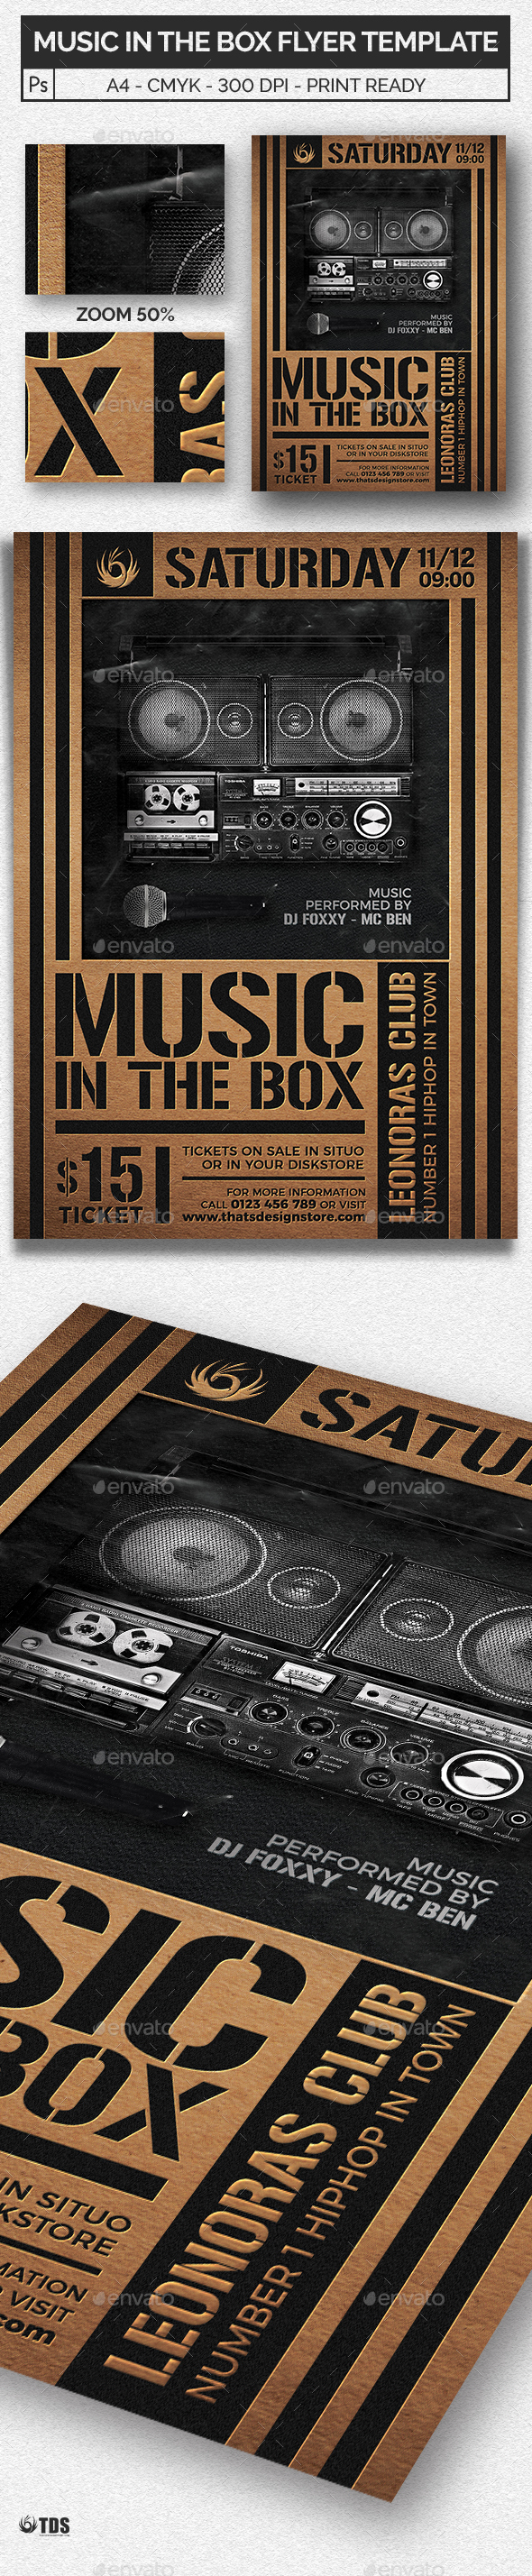 Music in the Box Flyer Template - Clubs & Parties Events